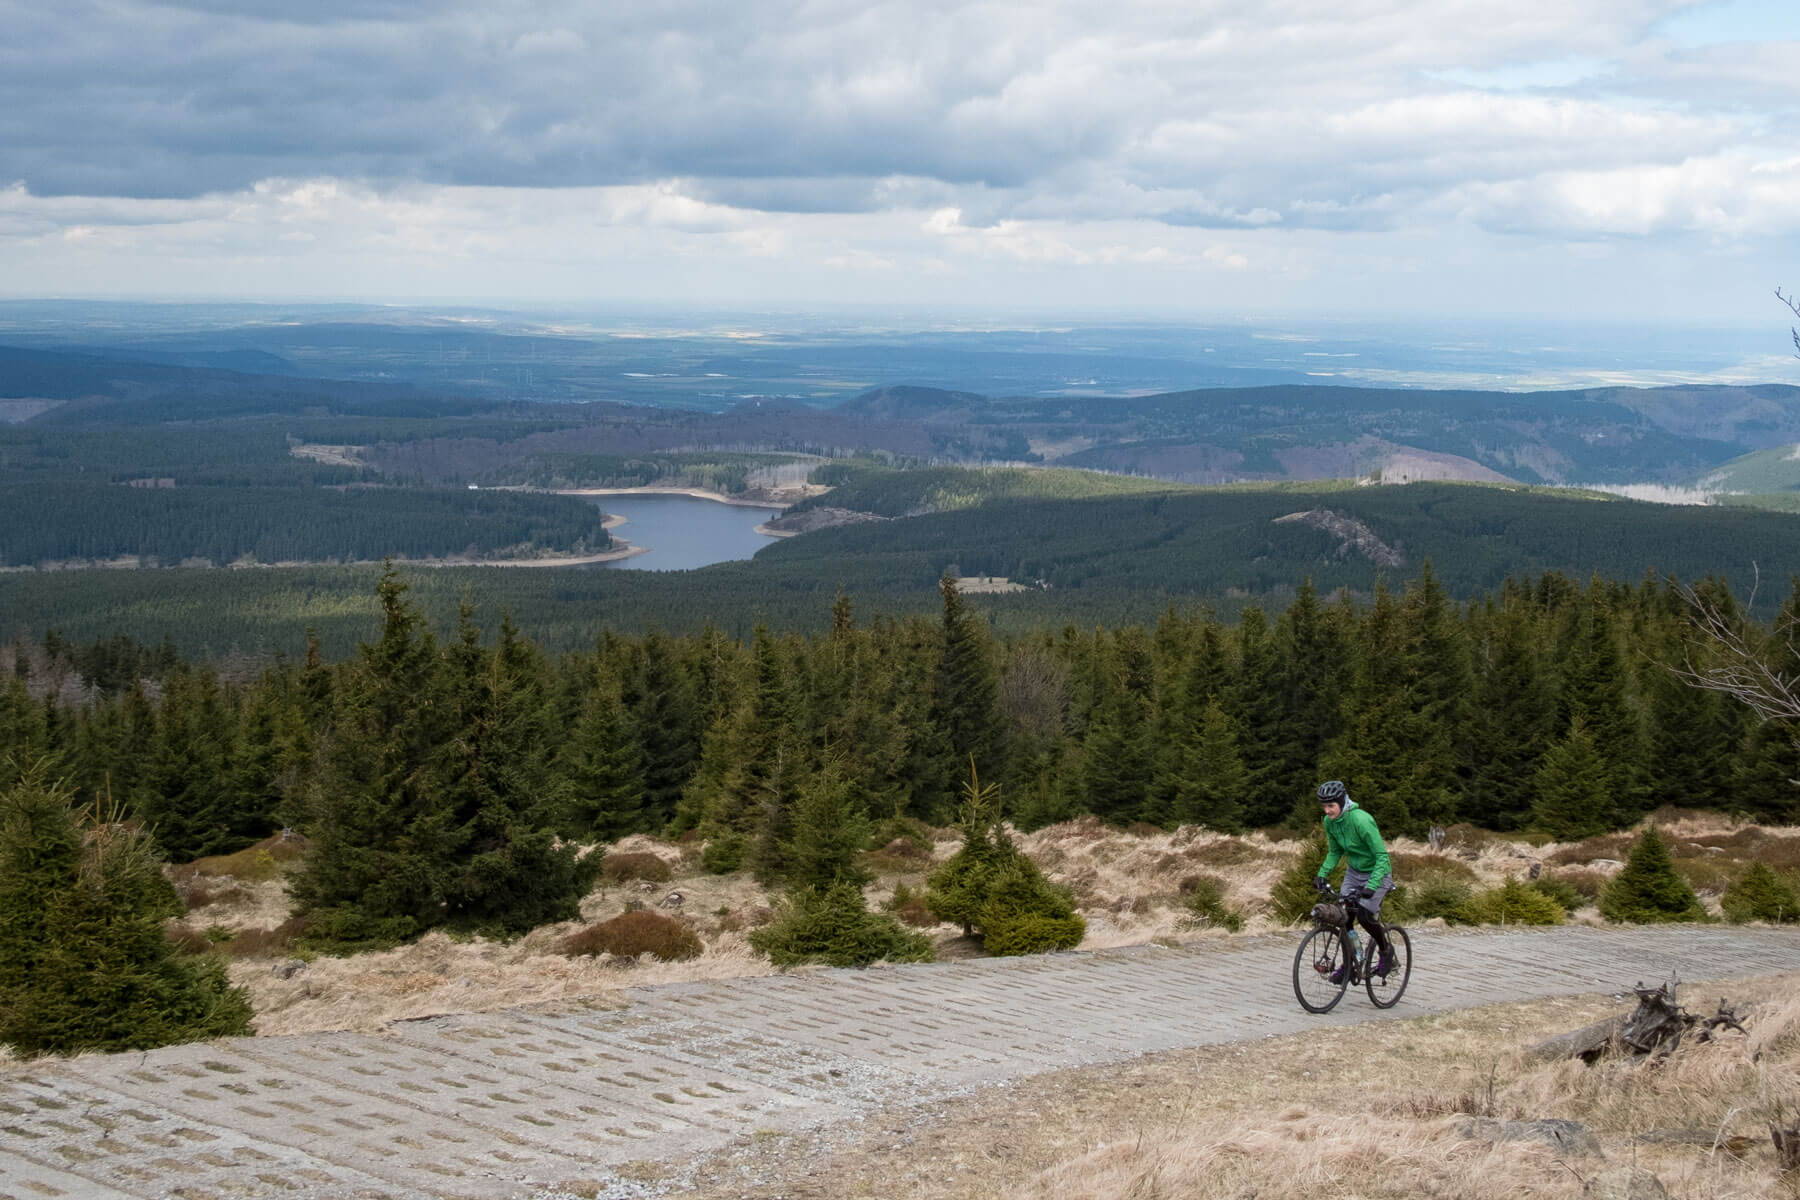 Riding the Brocken by bicycle